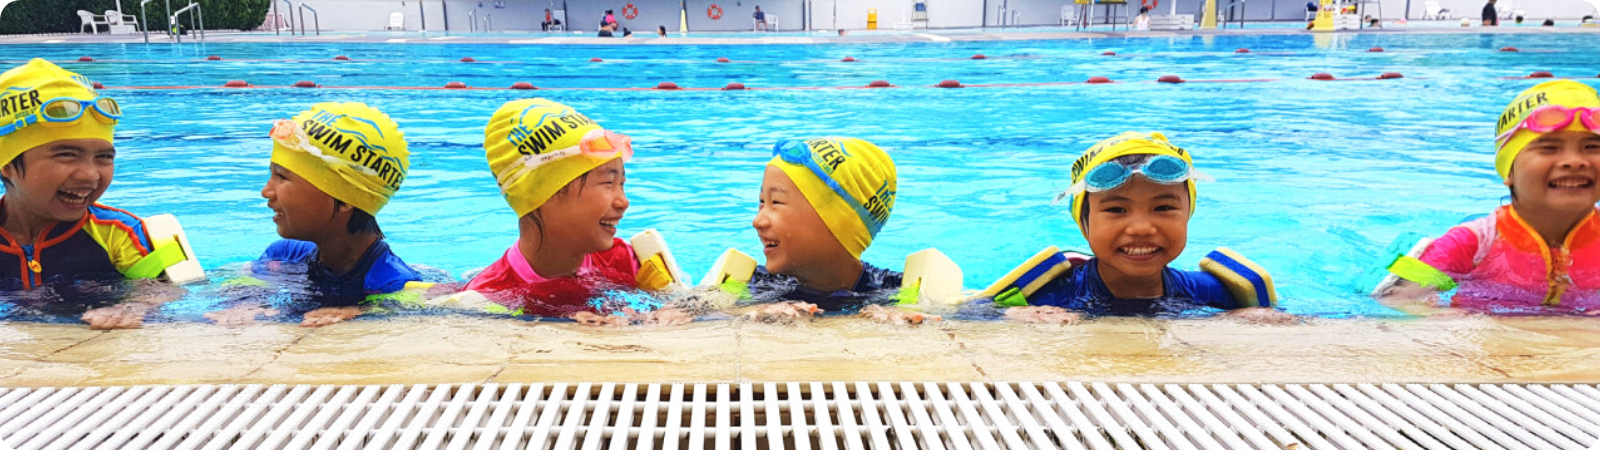 A group of happy children wearing safety Arm Floats, Yellow Swimming Cap and Goggles, are having their swimming lessons in the deep pool